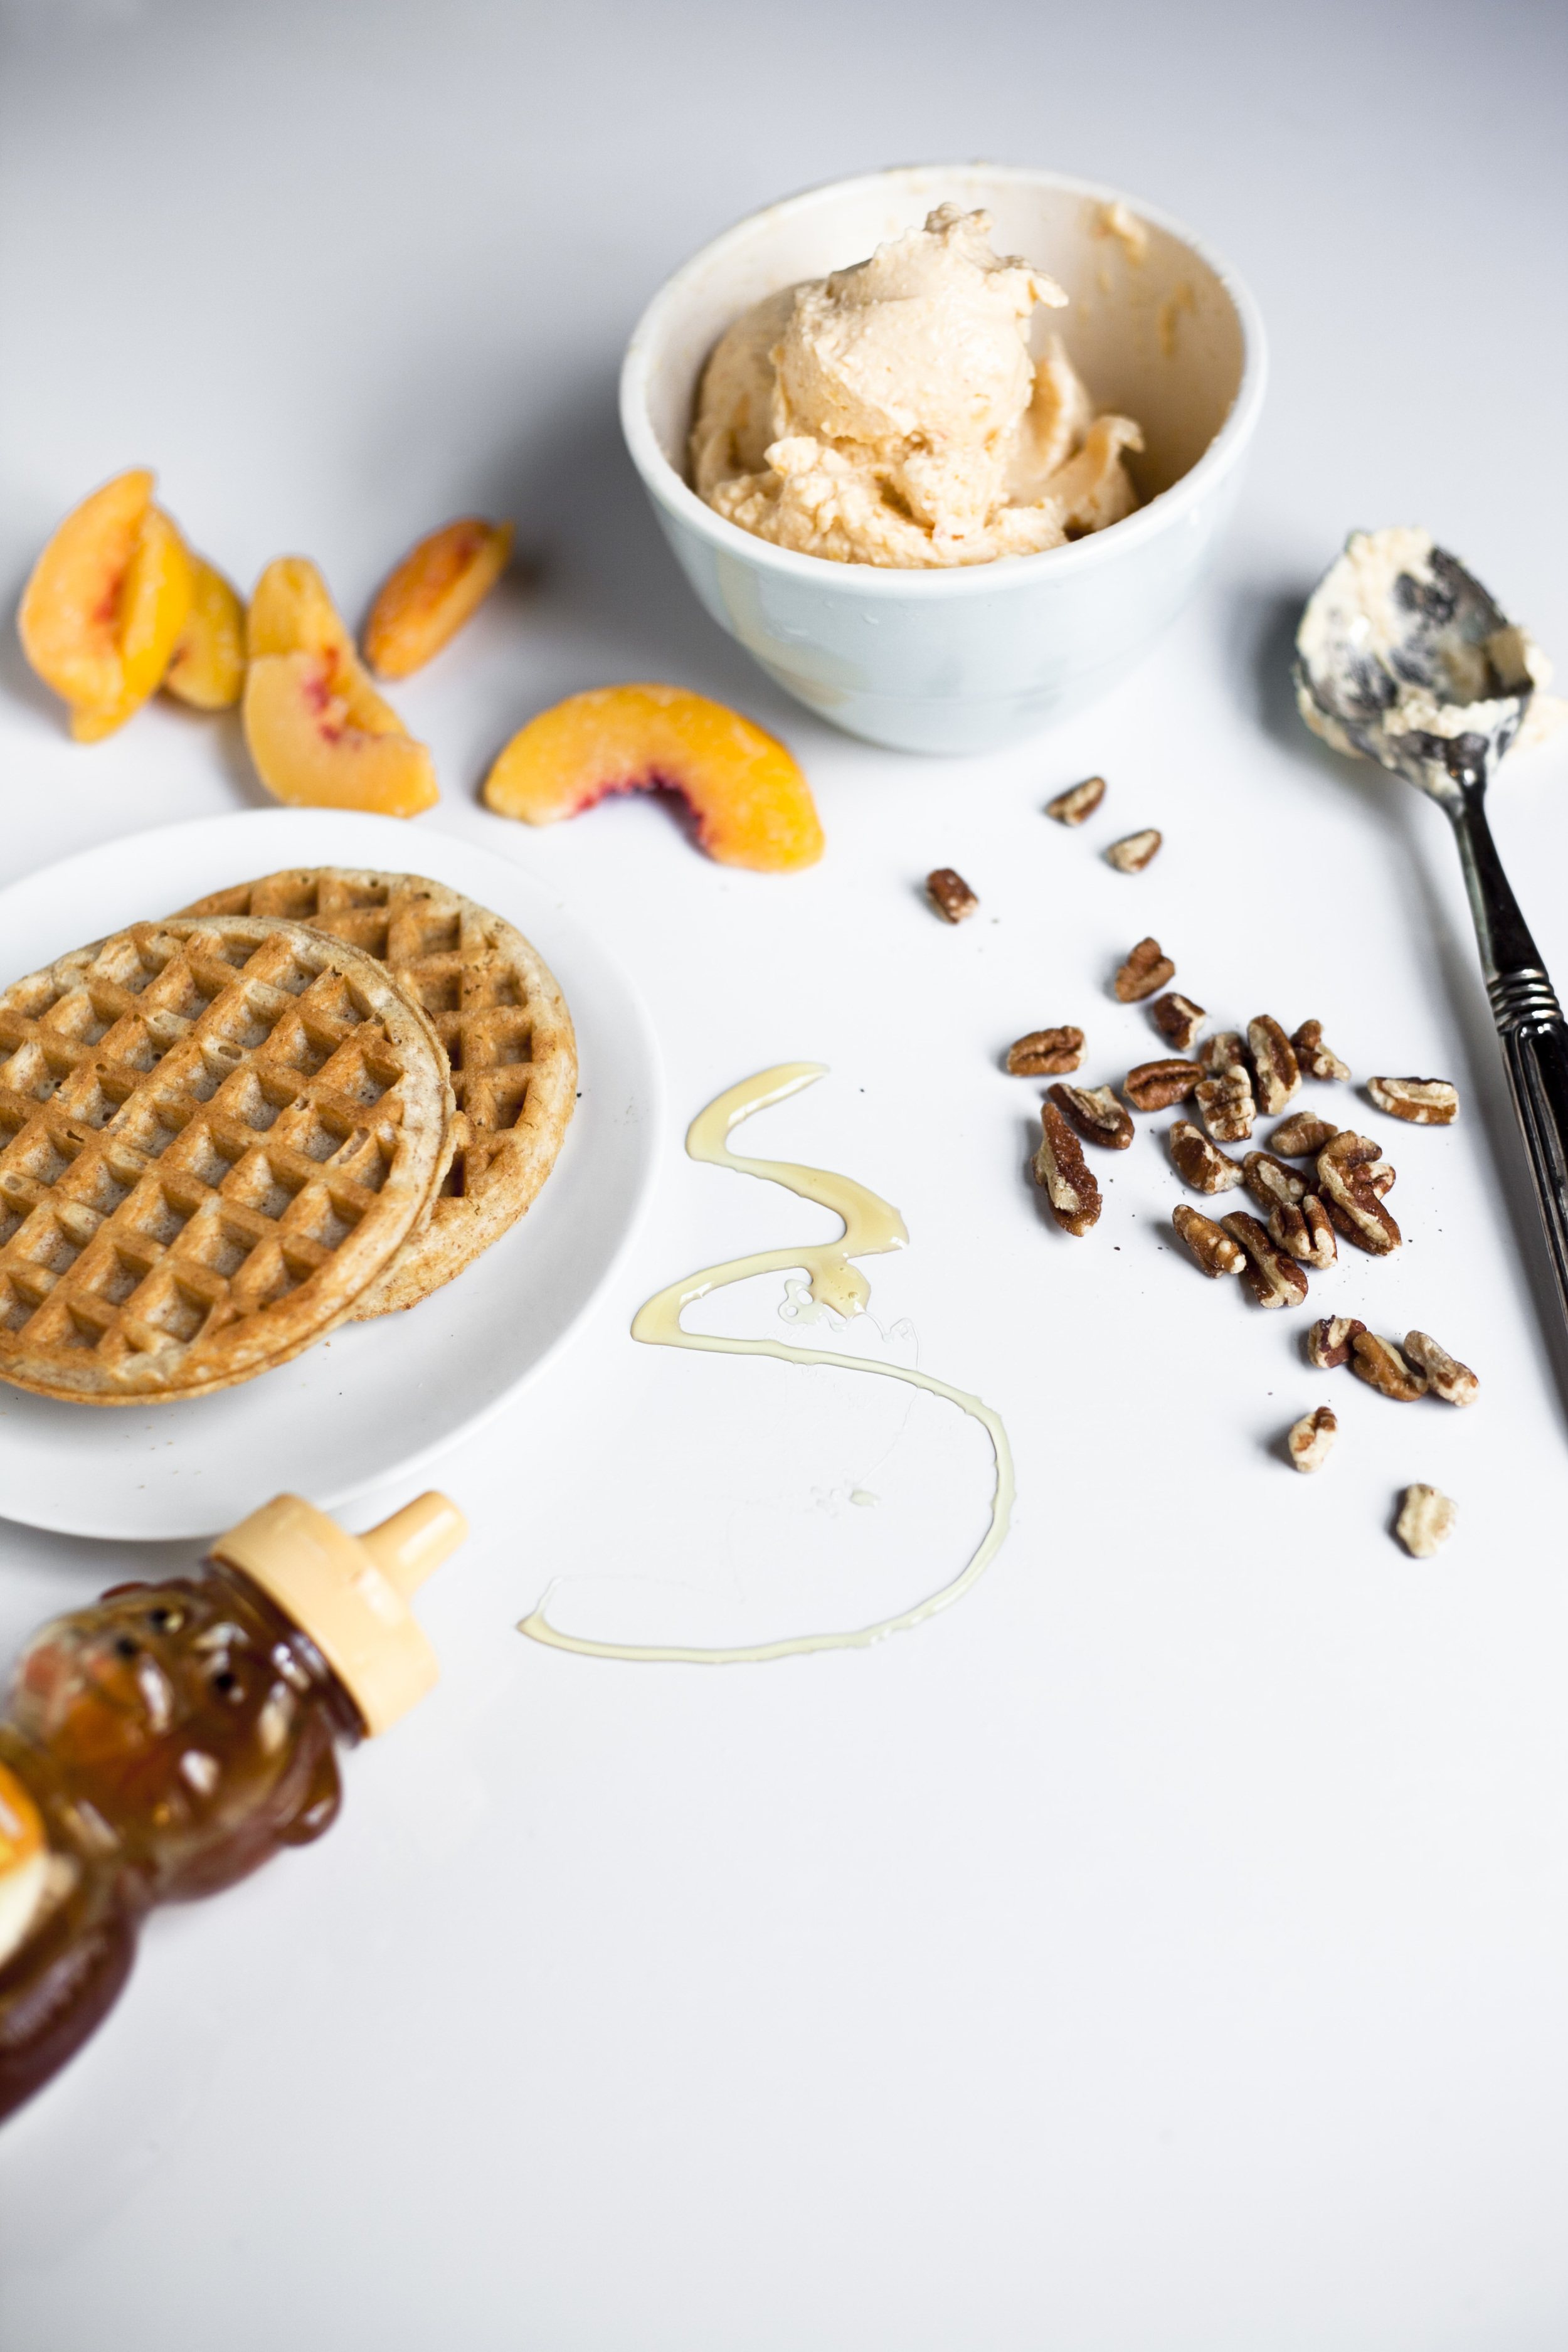 Healthy Southern Waffle Ice Cream SandwichHealthy Southern Waffle Ice Cream Sandwich